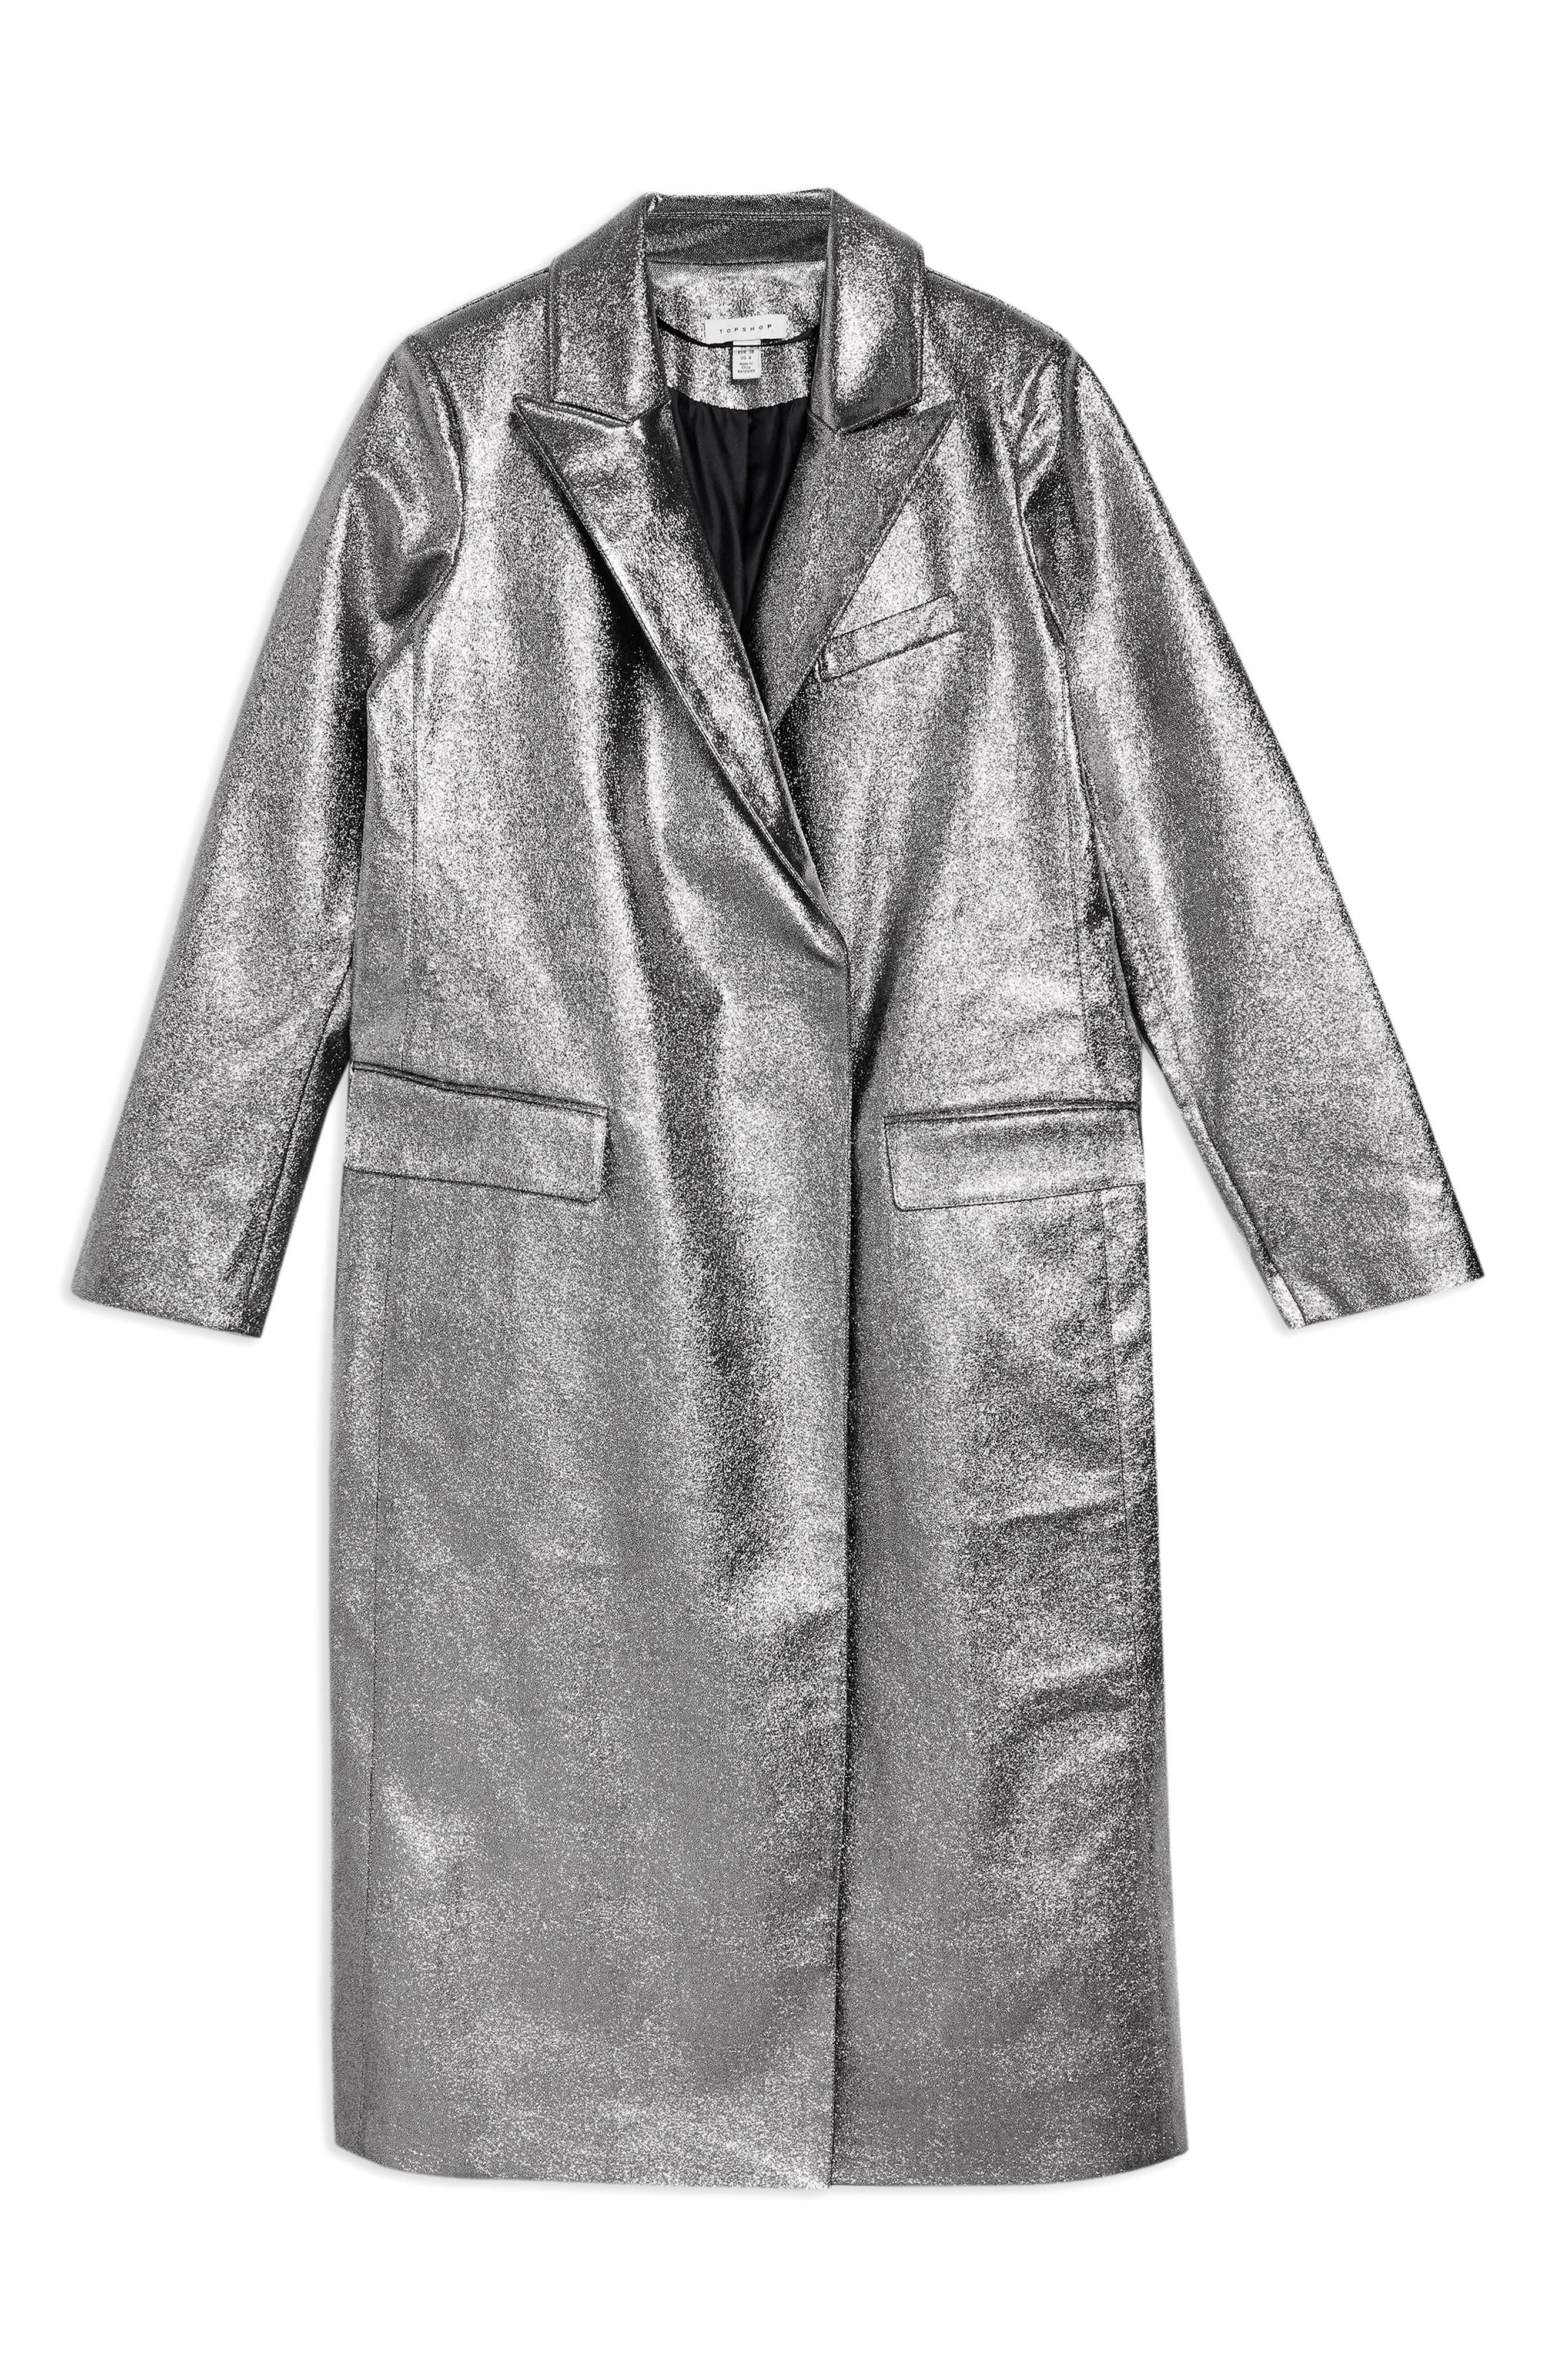 TOPSHOP,                             Twinkle Textured Coat,                             Alternate thumbnail 3, color,                             SILVER